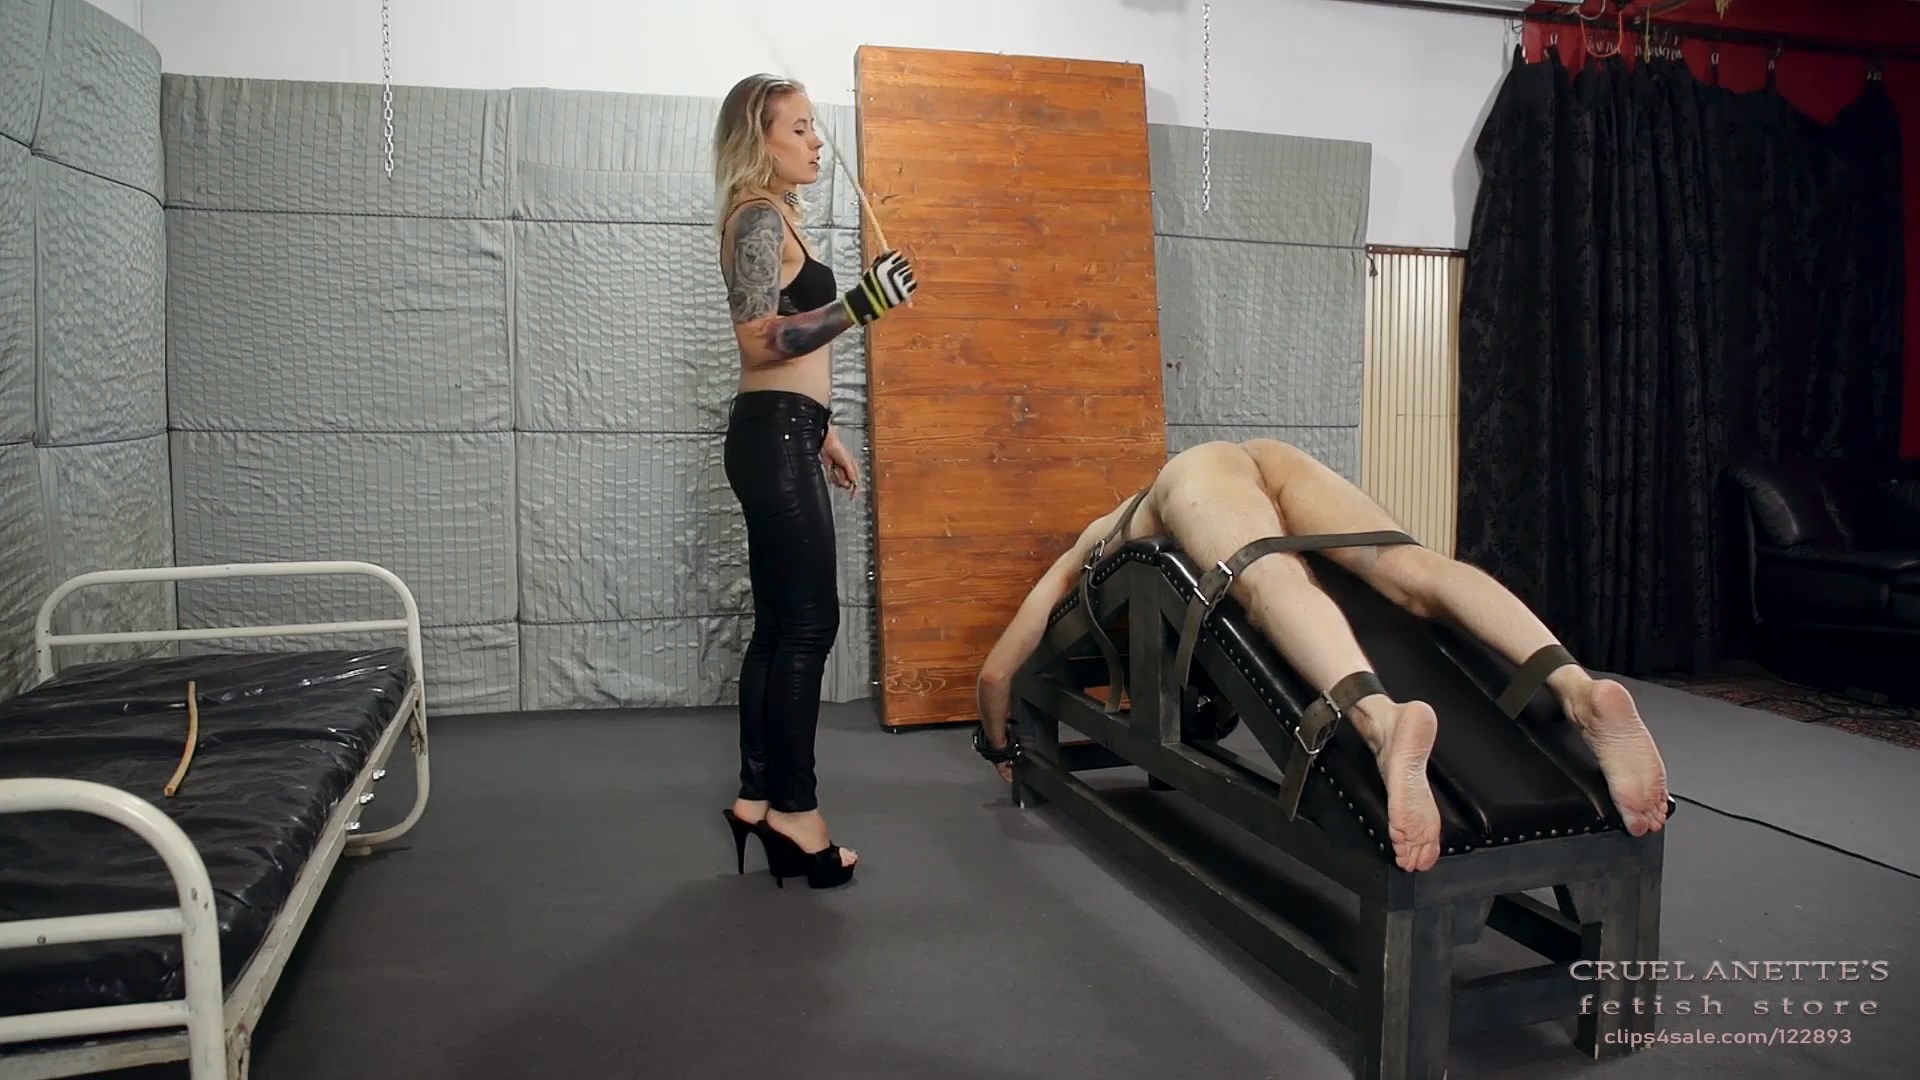 Caning compilation 1 - CRUEL ANETTES FETISH STORE - FULL HD/1080p/MP4